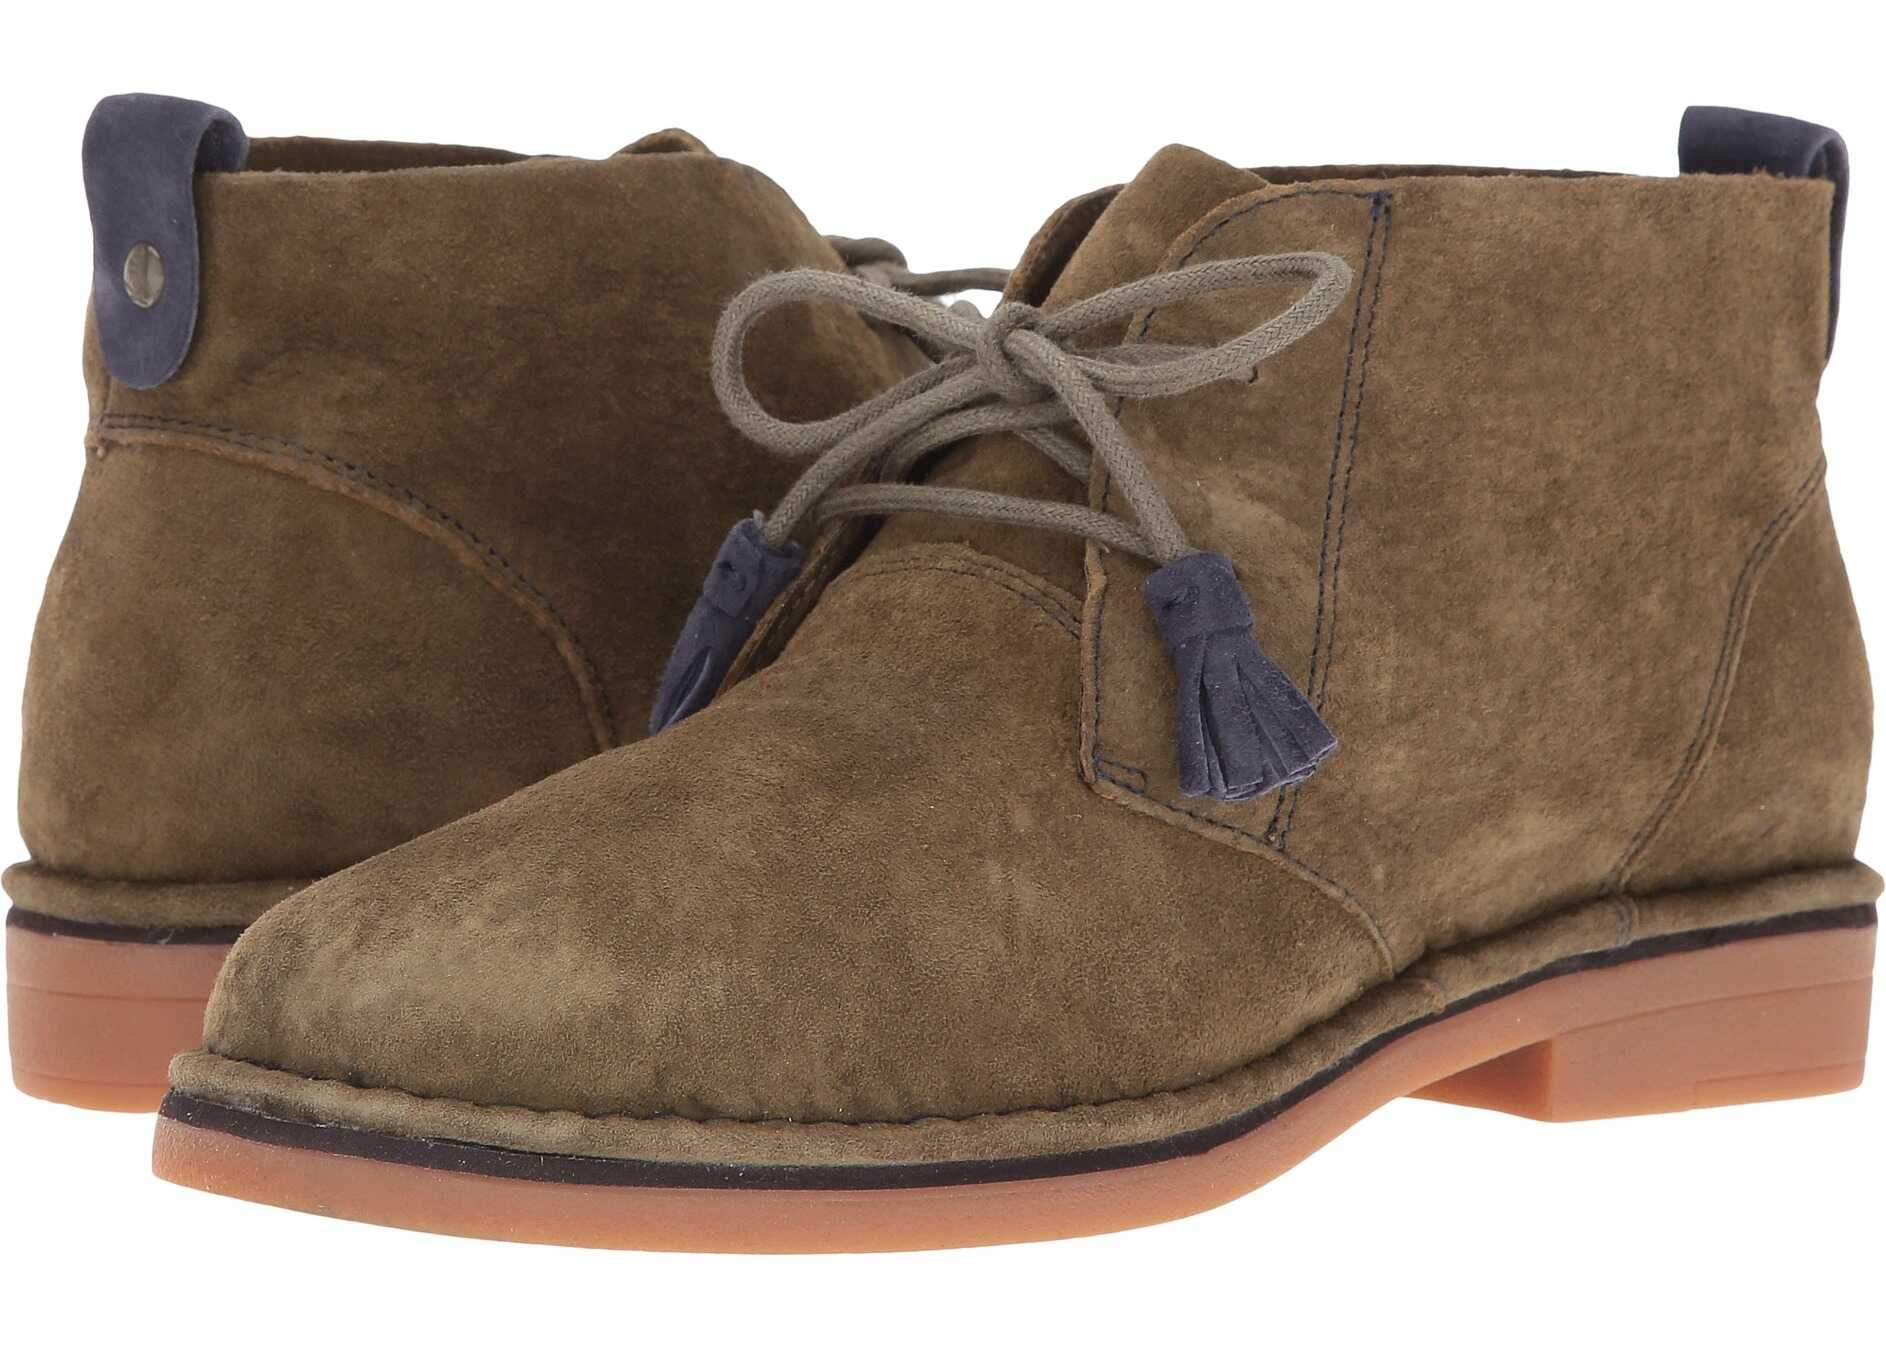 Hush Puppies Cyra Catelyn Dark Olive Suede